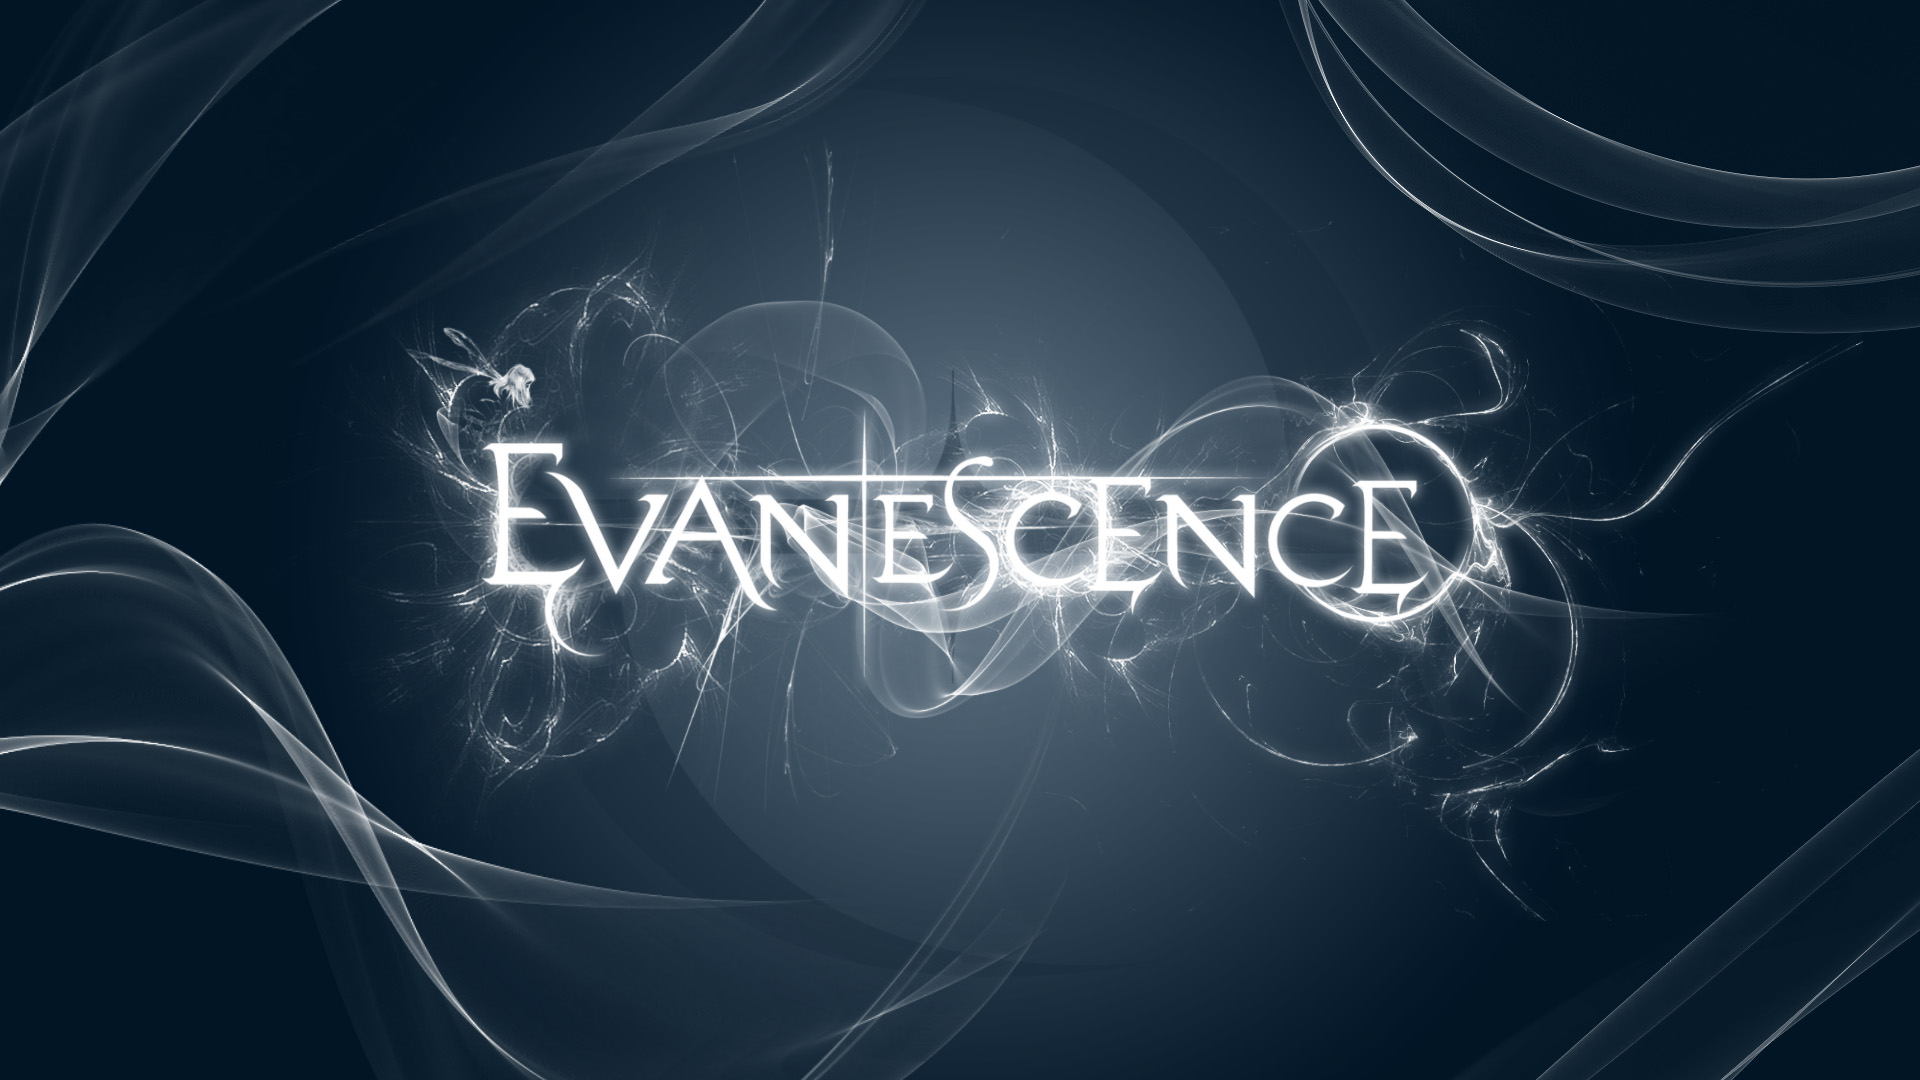 Evanescence HD Wallpapers evanescence hd 1920x1200jpg   Ecro   Ecro 1920x1080